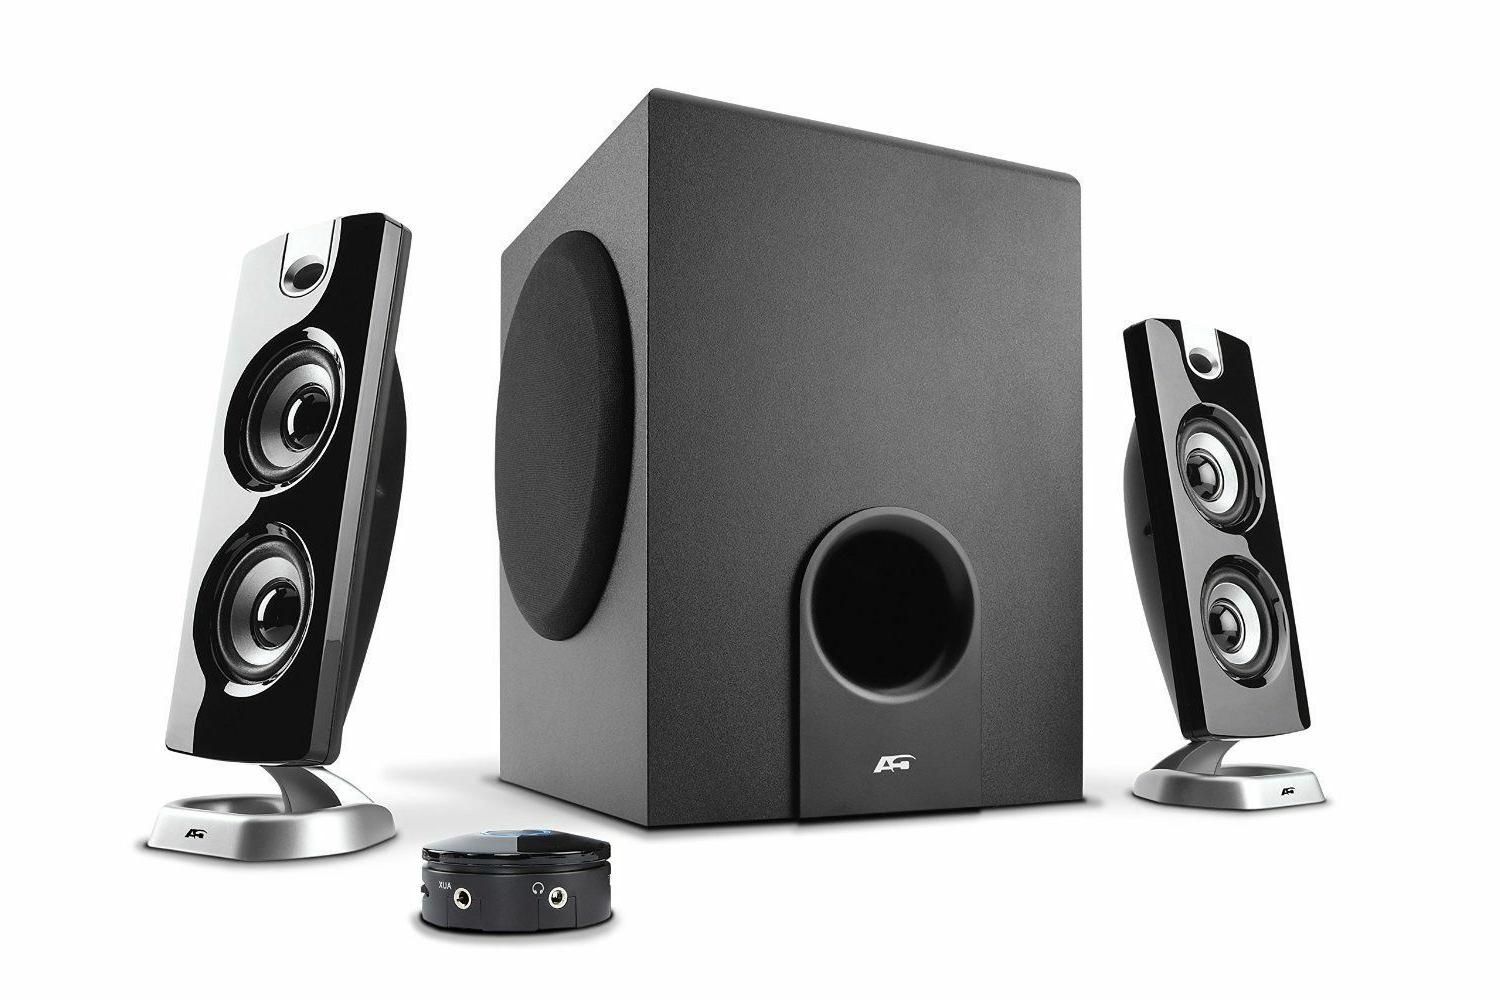 30 watt powered speakers with subwoofer